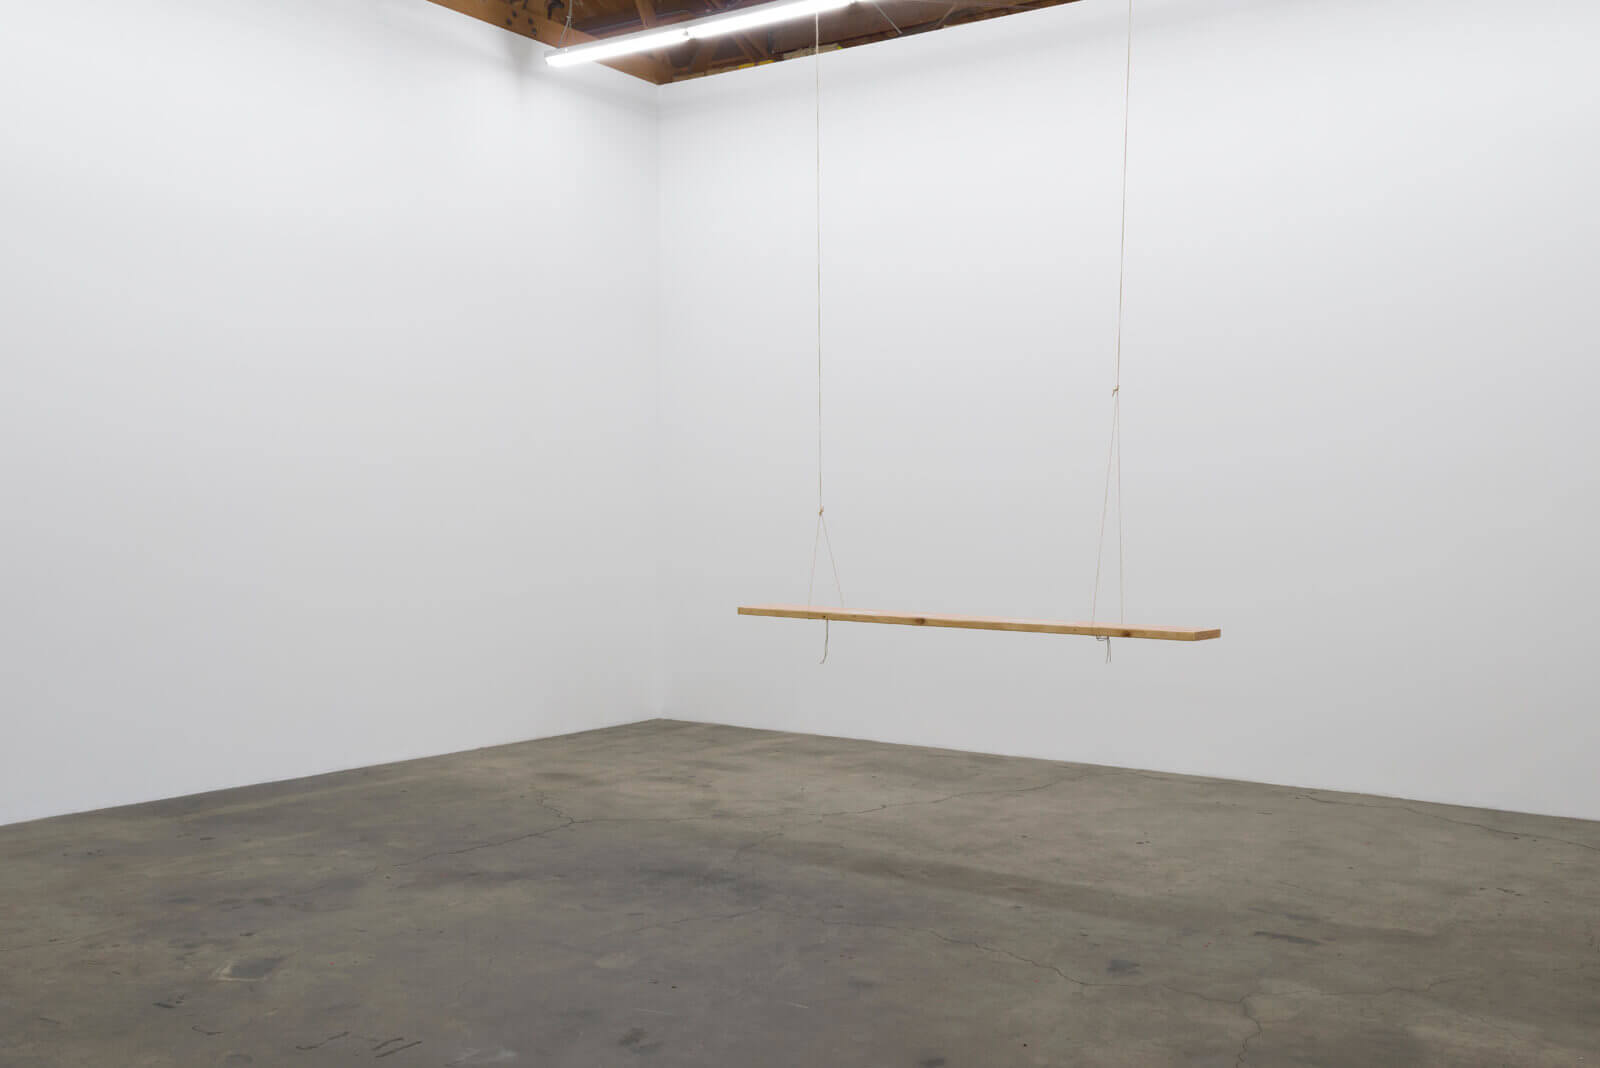 A_Davide-Balula-Broken-Things-Float-Faster-Installation-View-2016